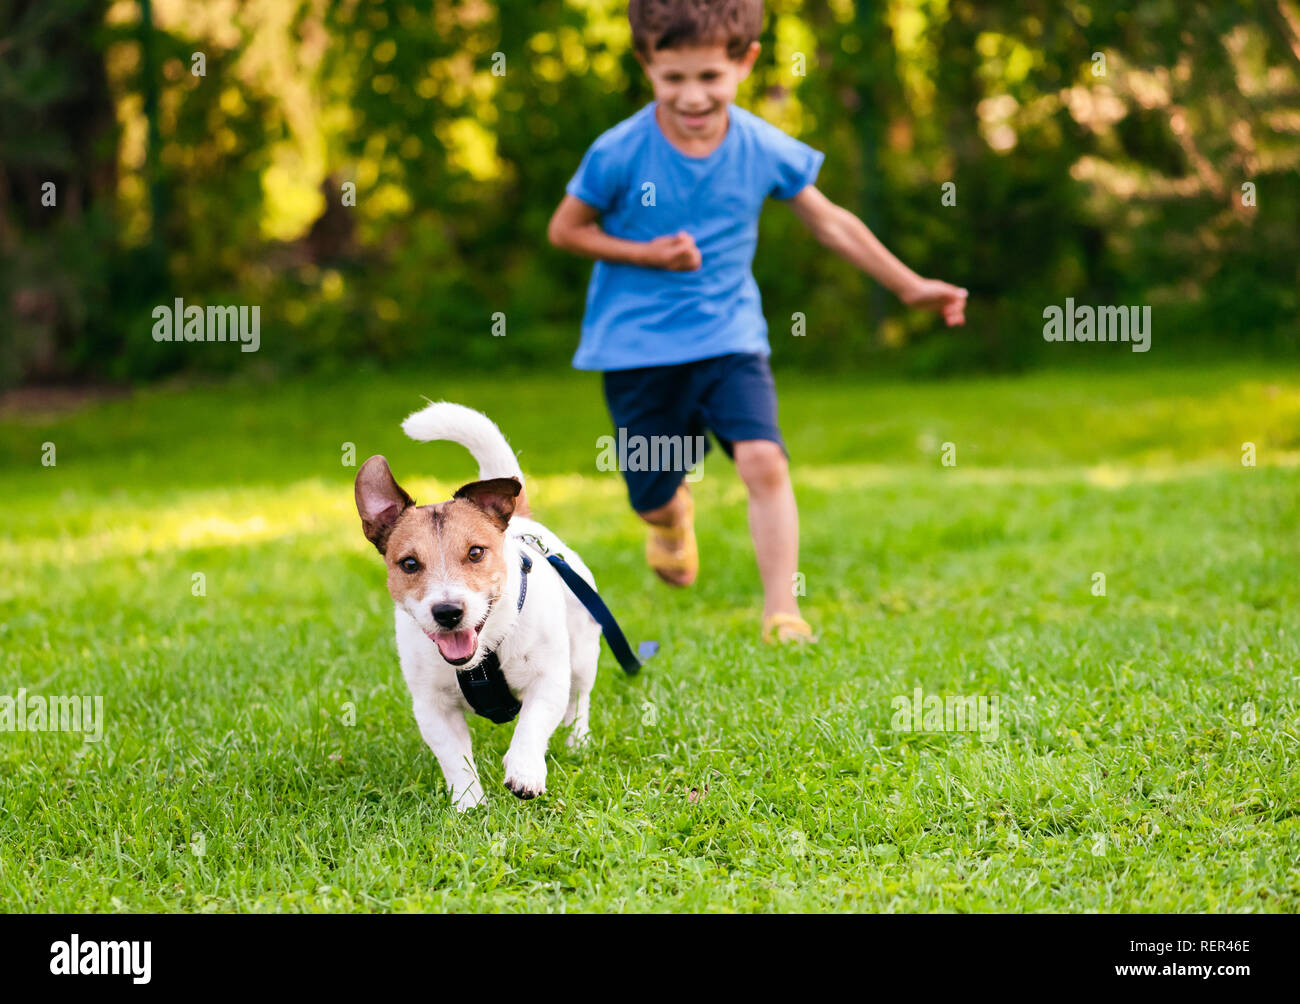 Naughty dog with leash on ground running from his handler Stock Photo